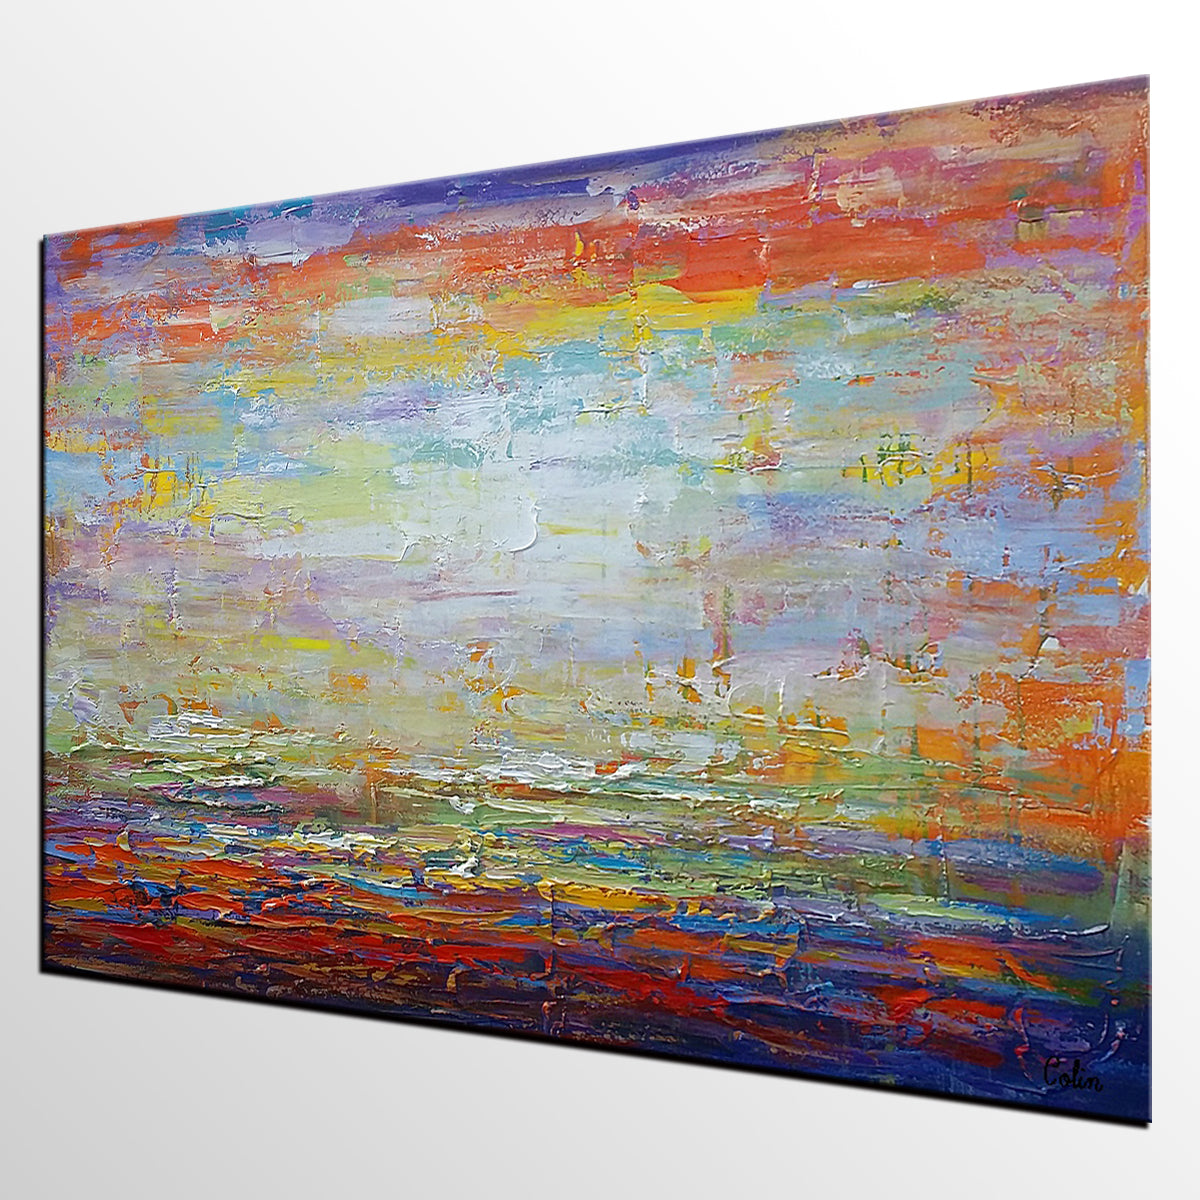 Canvas Painting, Original Wall Art, Living Room Painting, Large Art, Canvas Art, Wall Art, Original Artwork, Canvas Painting, Modern Art, Wall Hanging 141